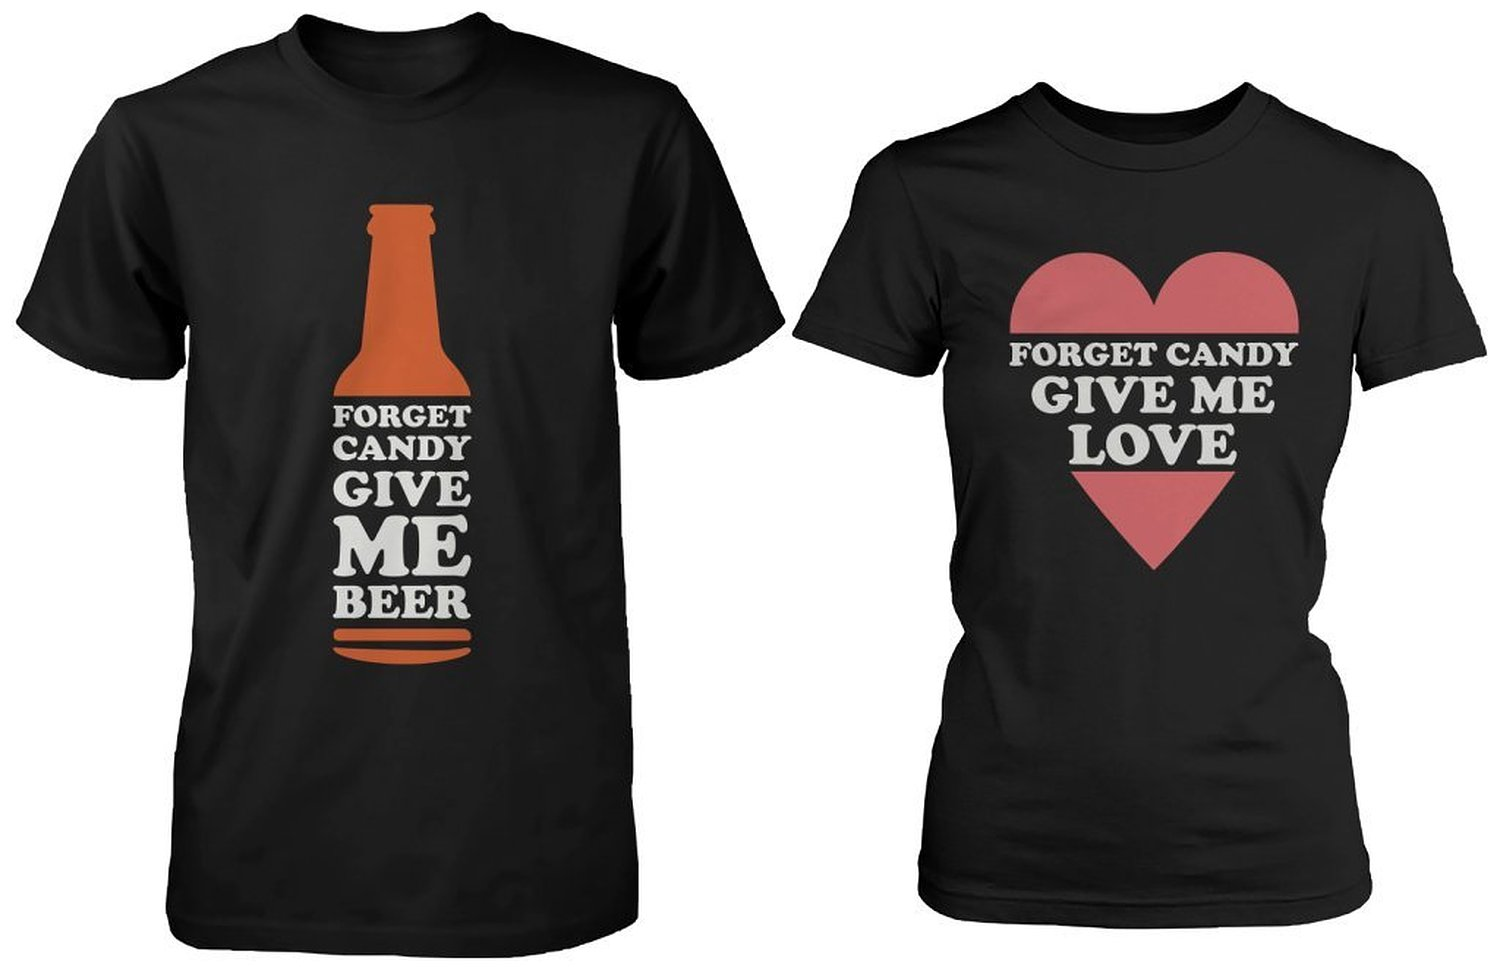 Amazon.com: Funny Halloween Couple Shirts Forget Candy Give Me Beer and Love: Clothing